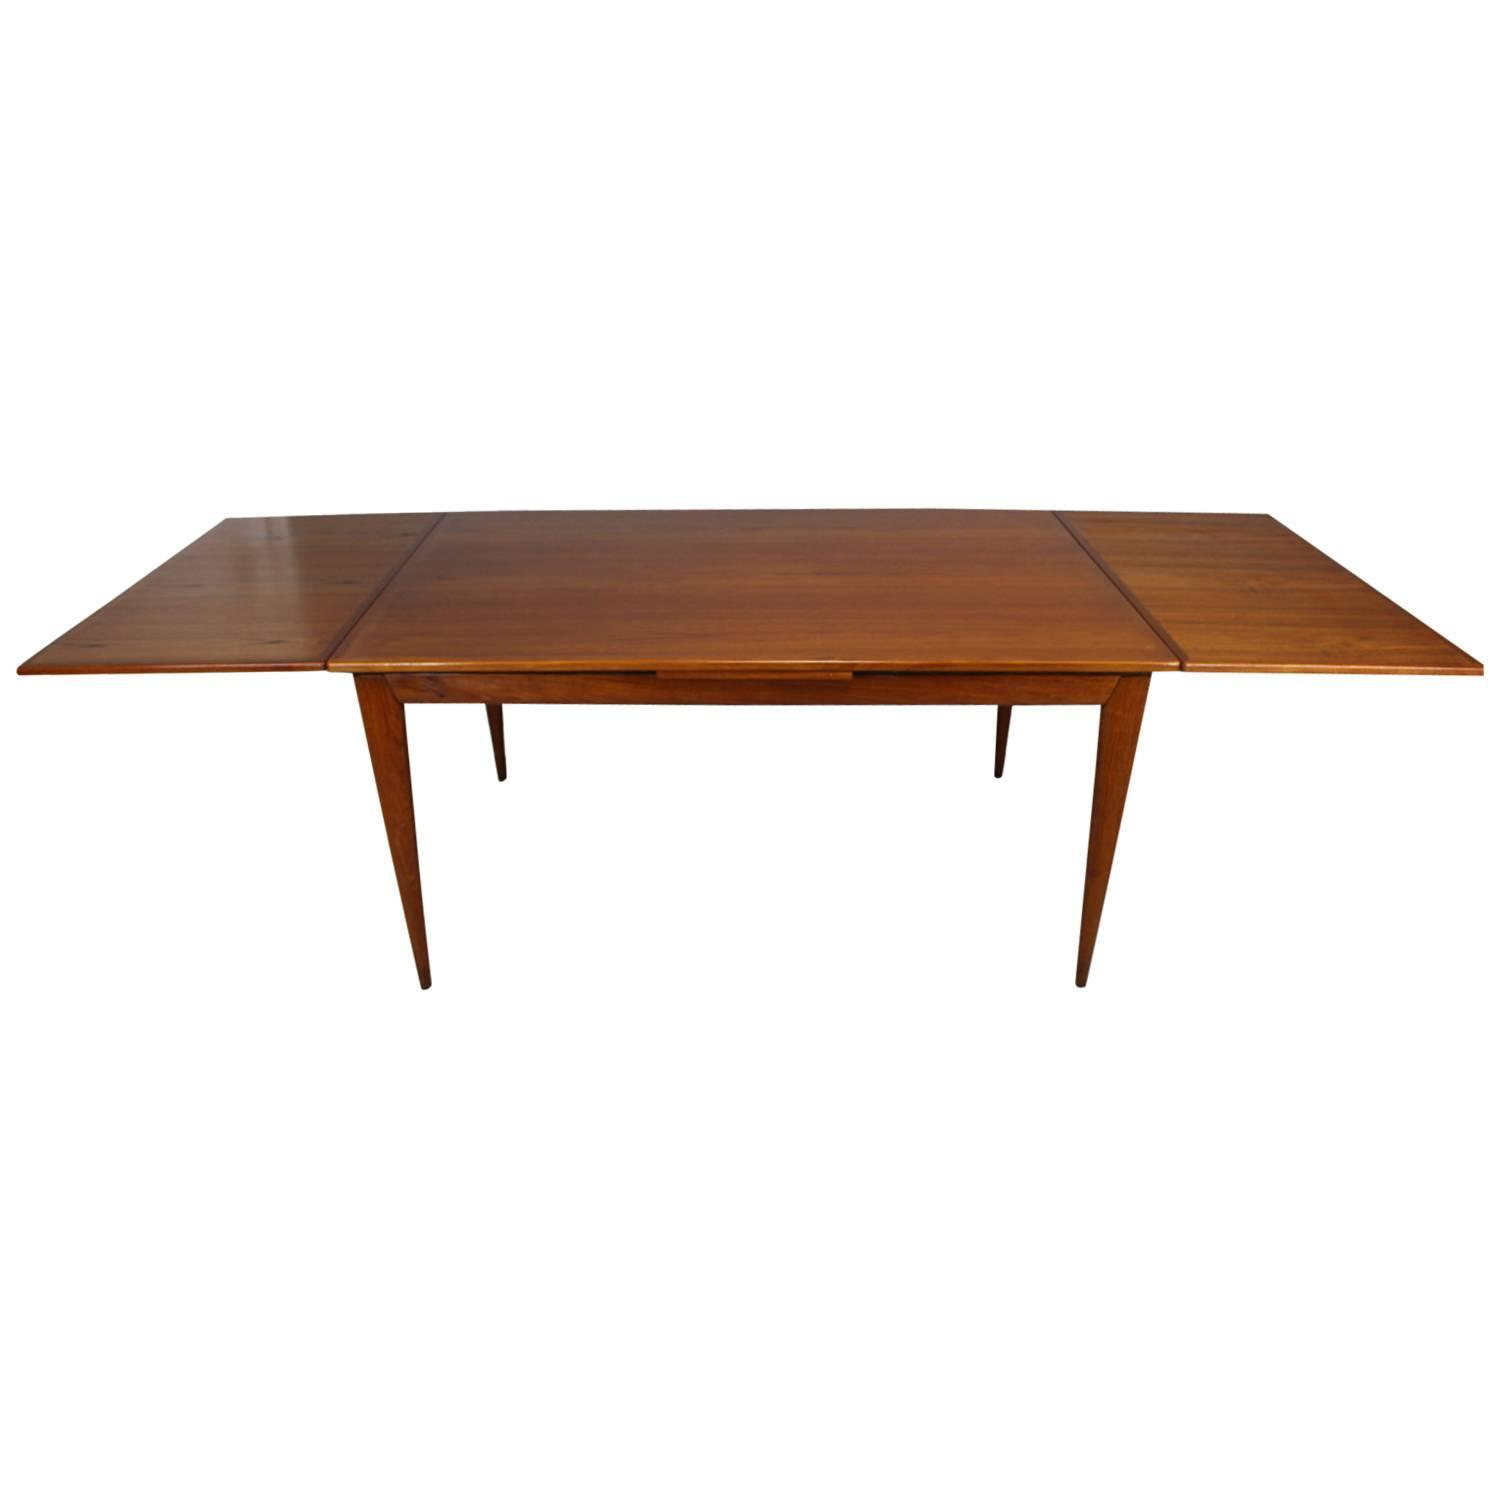 Niels Otto Moller Teak Dining Table For Sale At 1stdibs